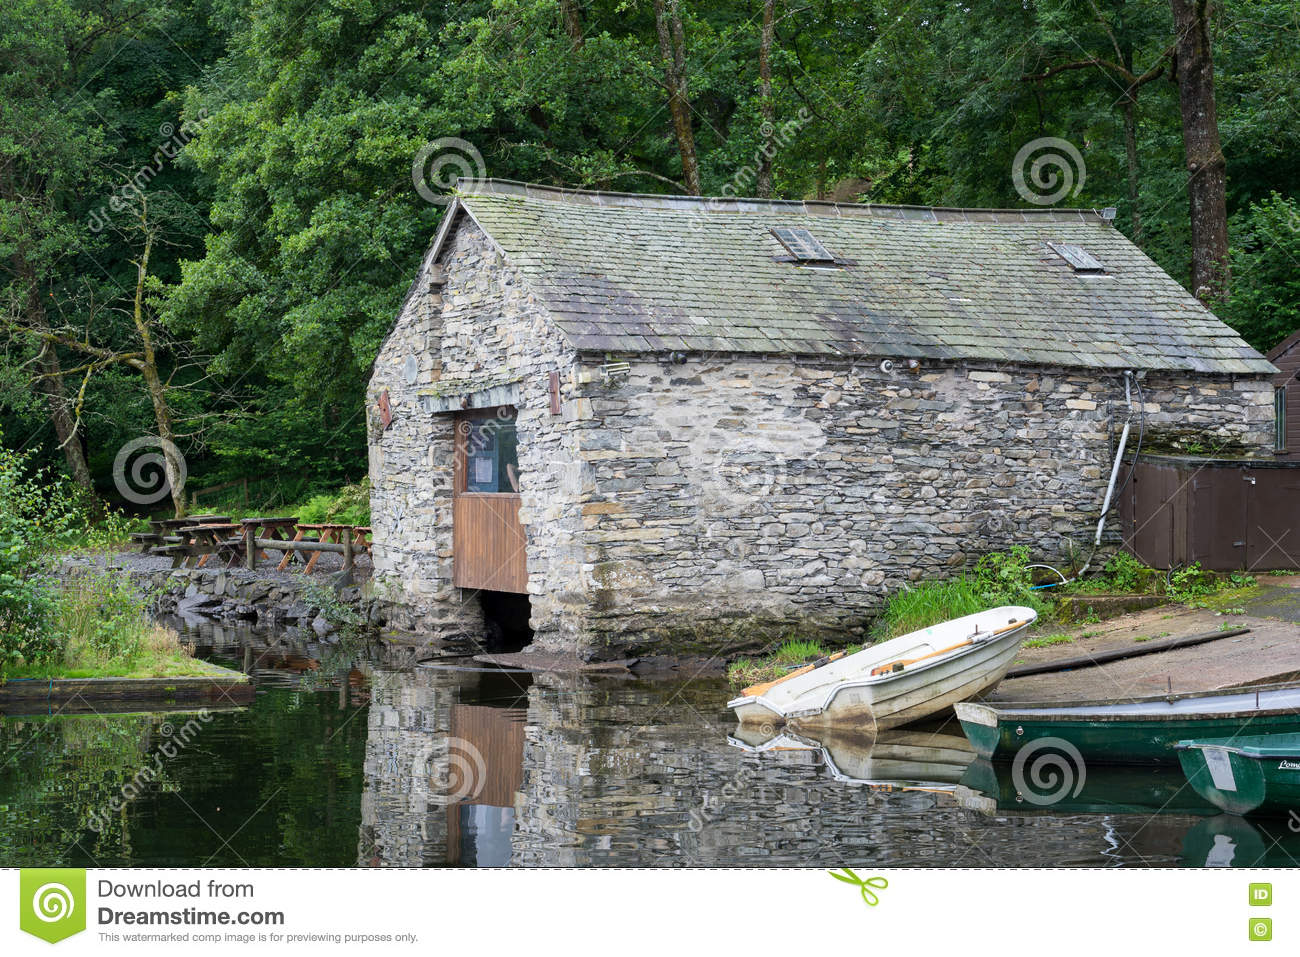 CONISTON WATER, MEER DISTRICT/ENGLAND - 21 AUGUSTUS: Oude Boathous